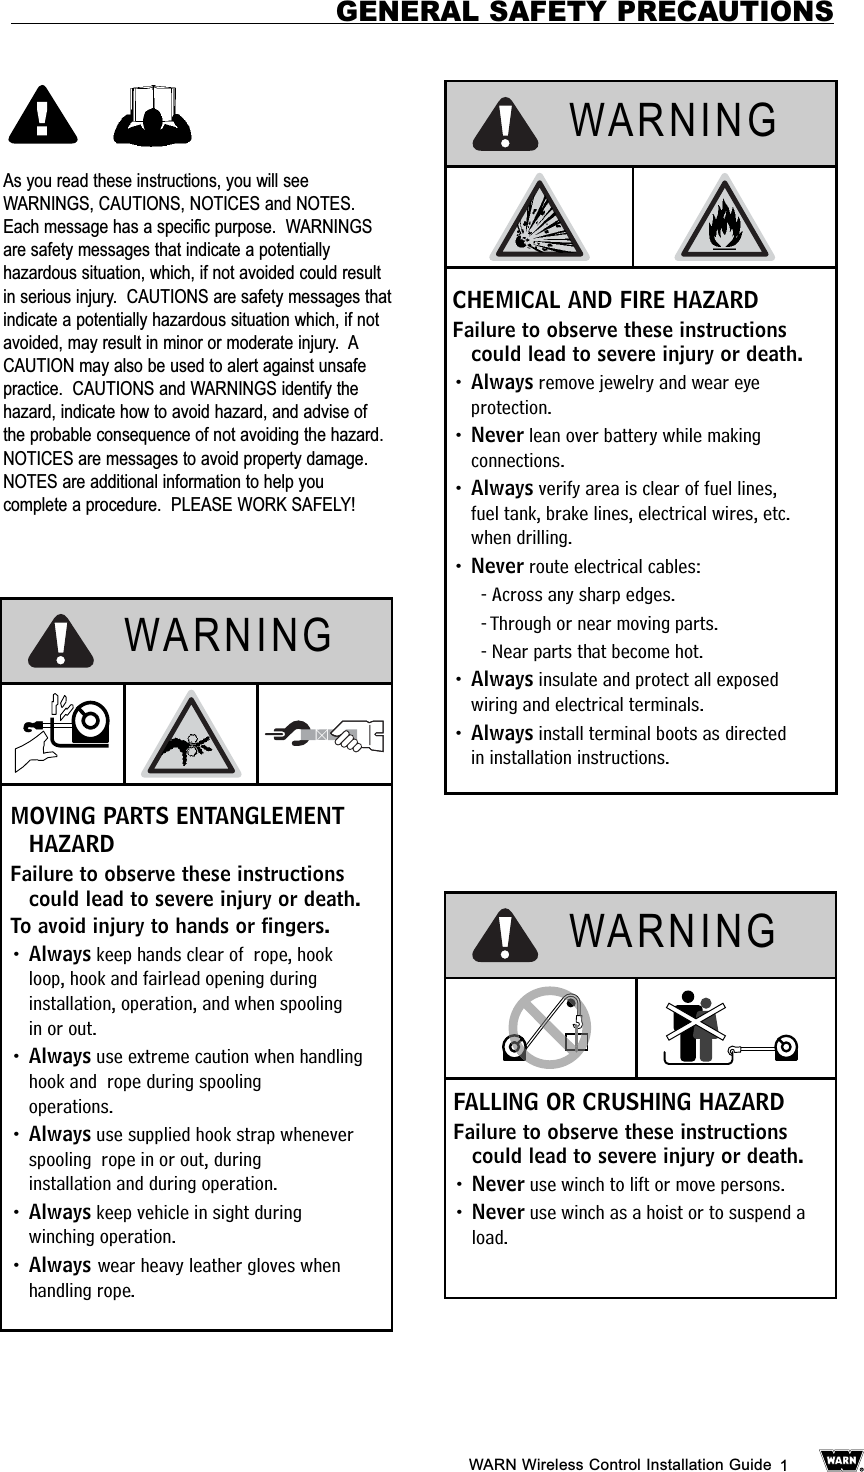 Warn Wtx001 Tunes Explorer Wireless User Manual Control Diagram Installation Guide 1as You Read These Instructions Will Seewarnings Cautions